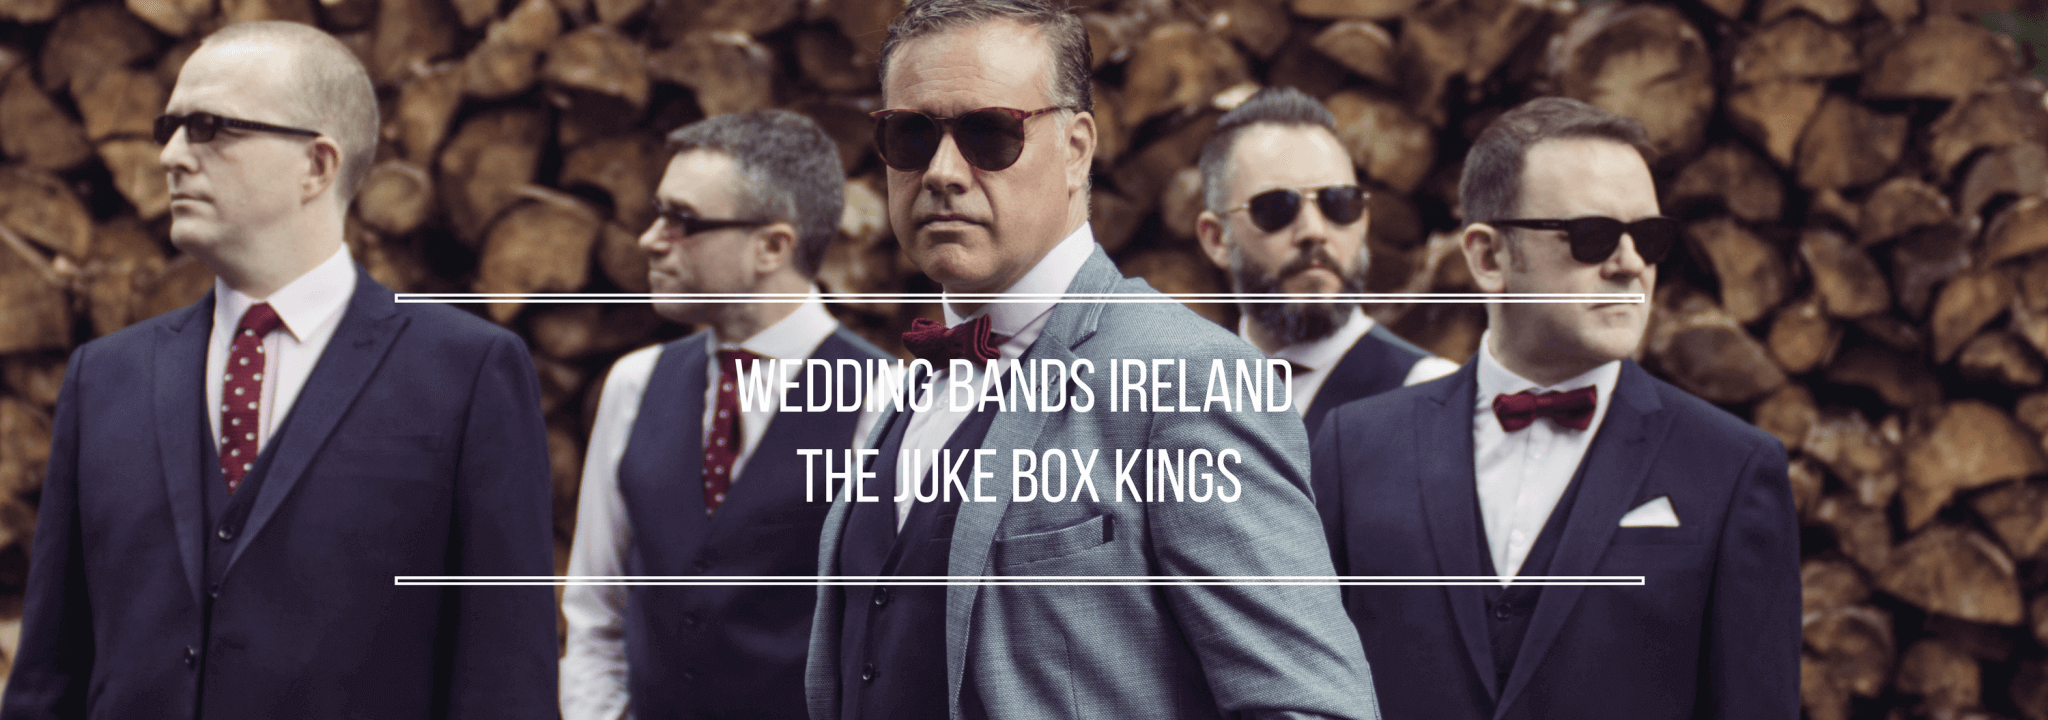 Wedding Bands Ireland The Jukebox Kings and DJ